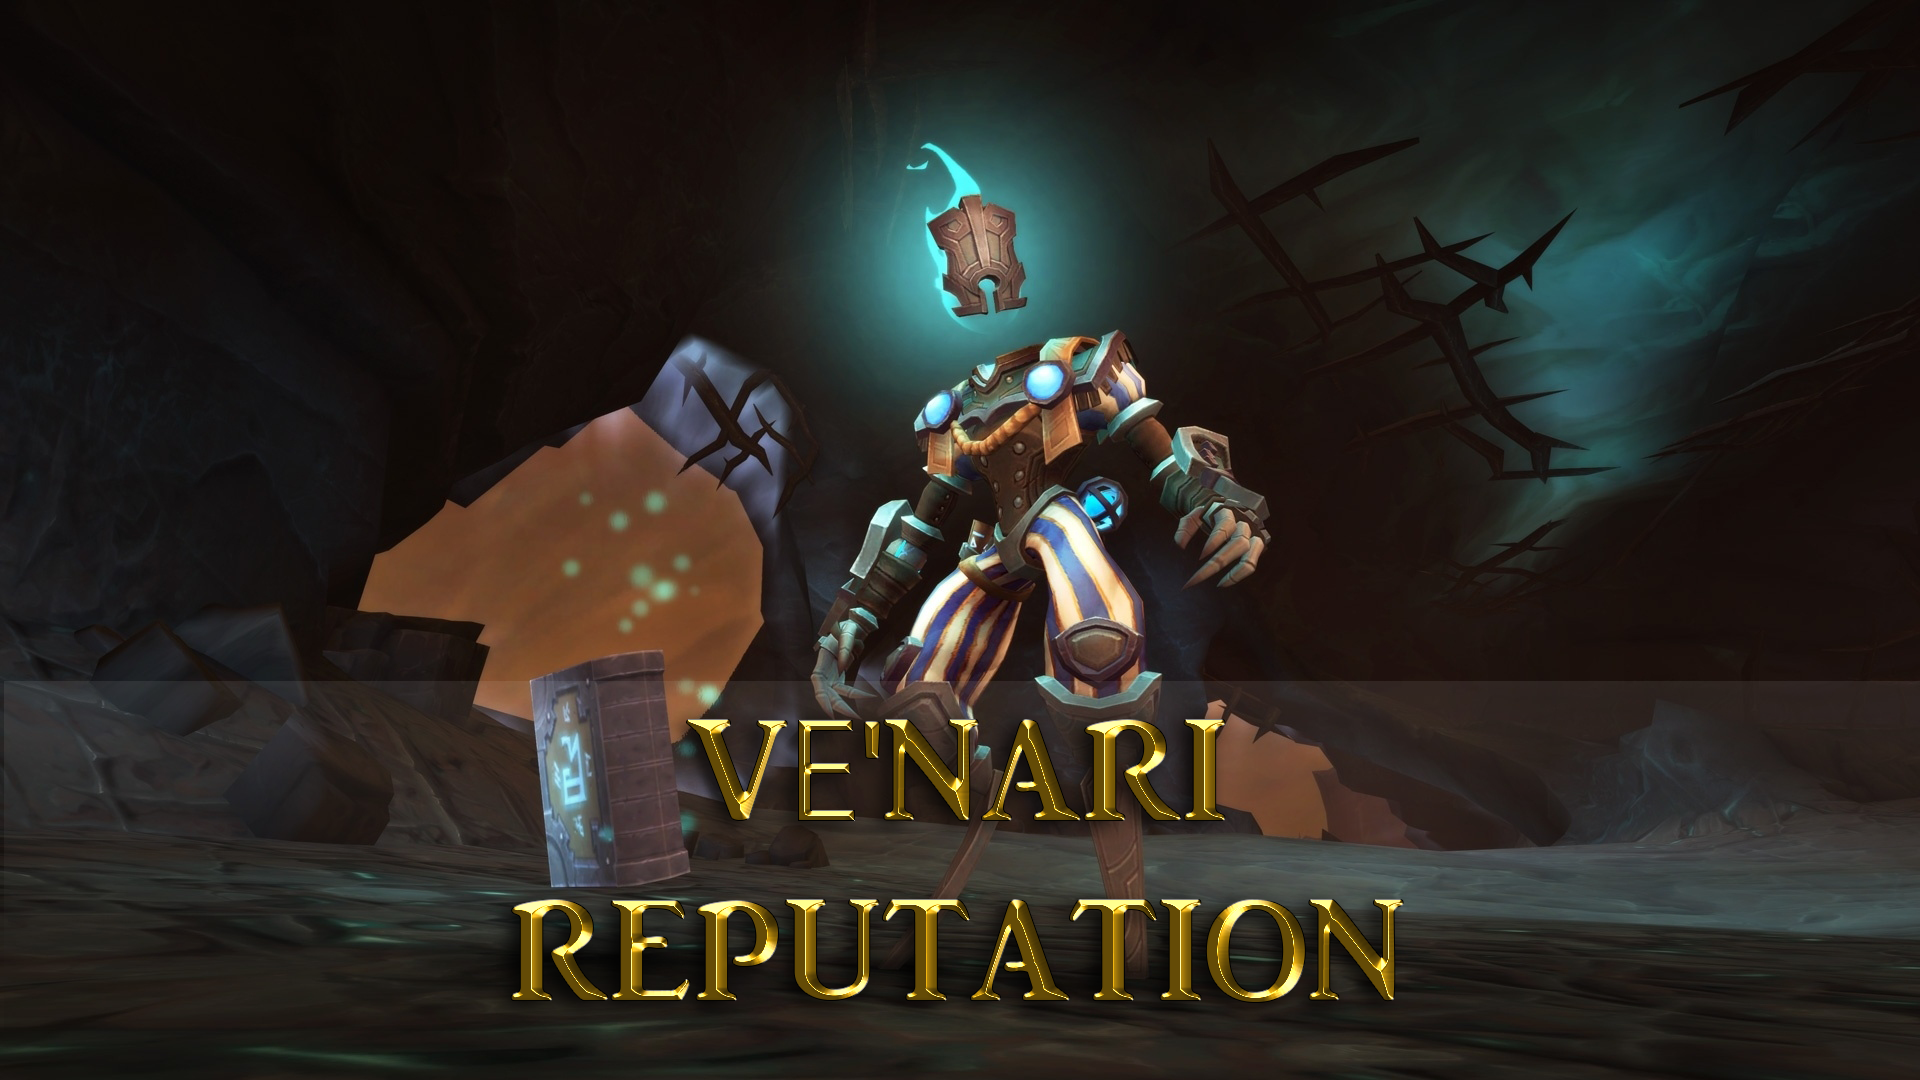 Ve'nari reputation GBD - e2p.com